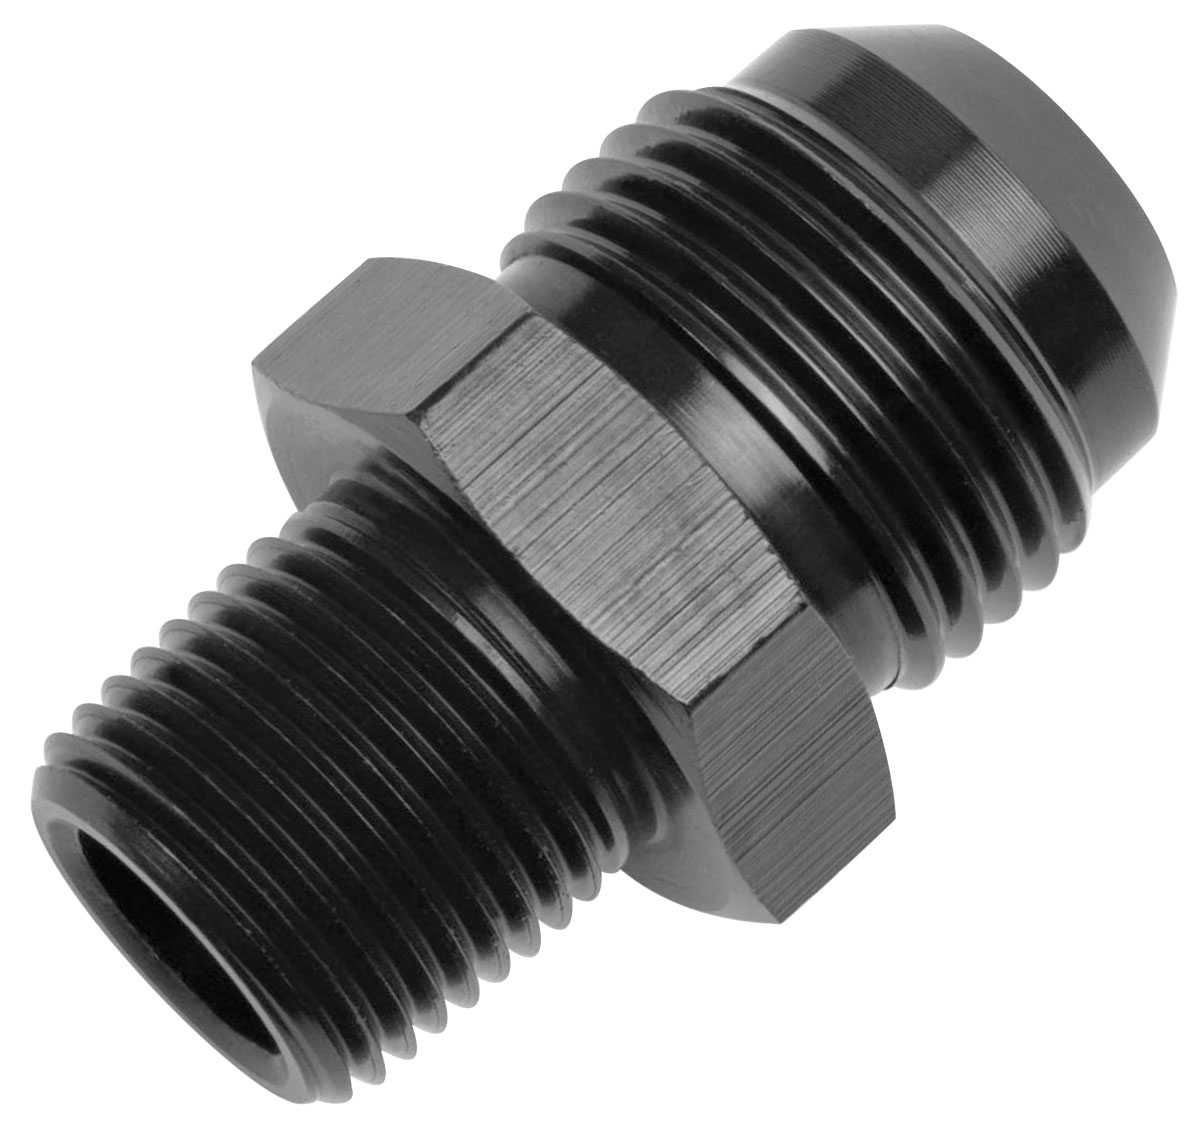 Photo of Adapter Fittings, Russell An-To-Npt, Straight -8 AN to 1/4""